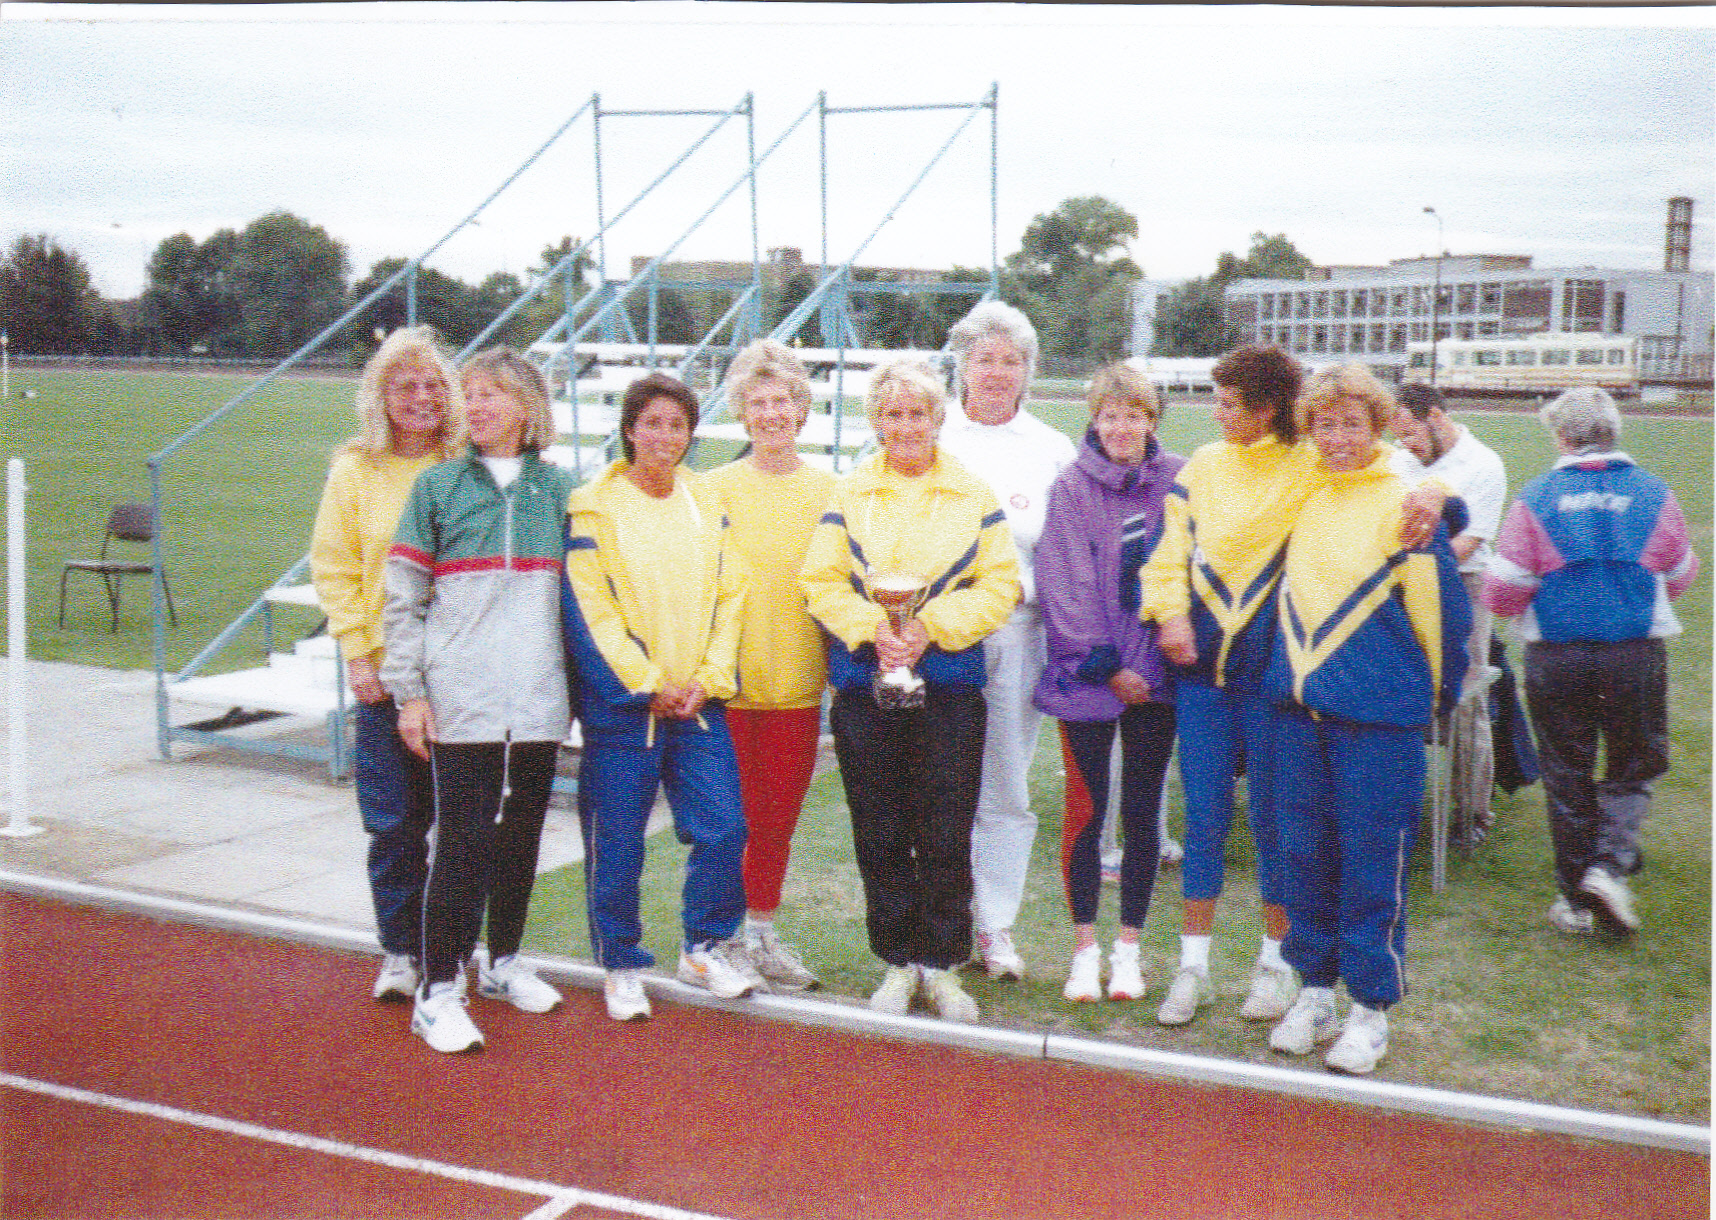 gallery/pictures/images/Some from the past .../Vets League Final, Hendon, Sept 1994  (2).jpg